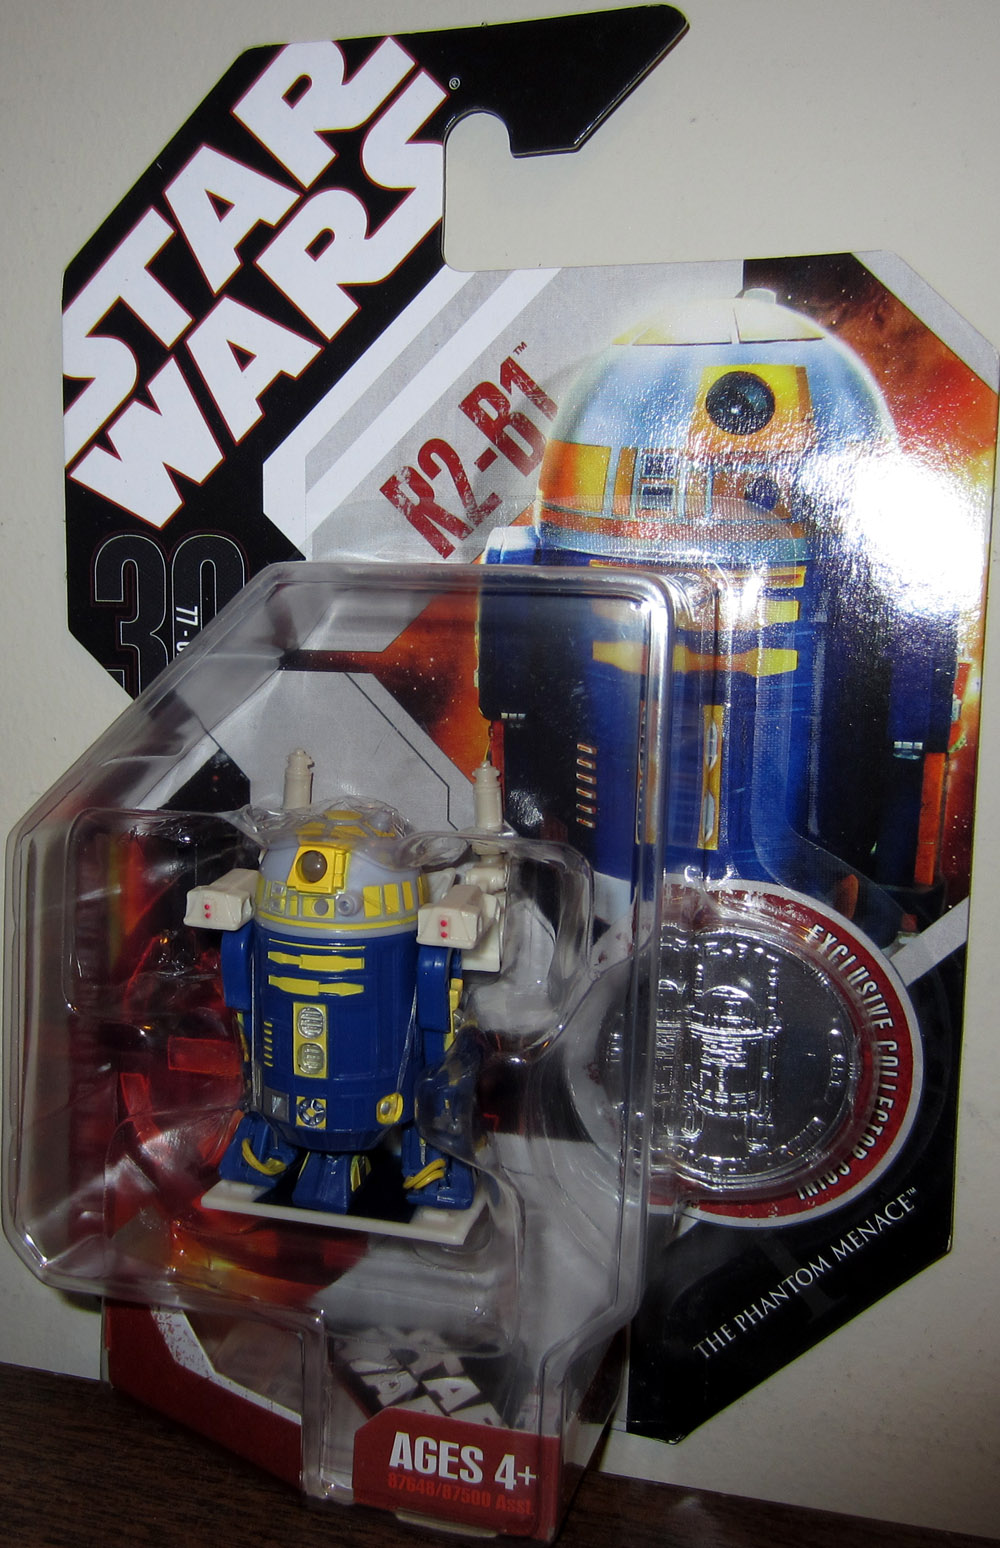 R2-B1 (30th Anniversary, with coin)